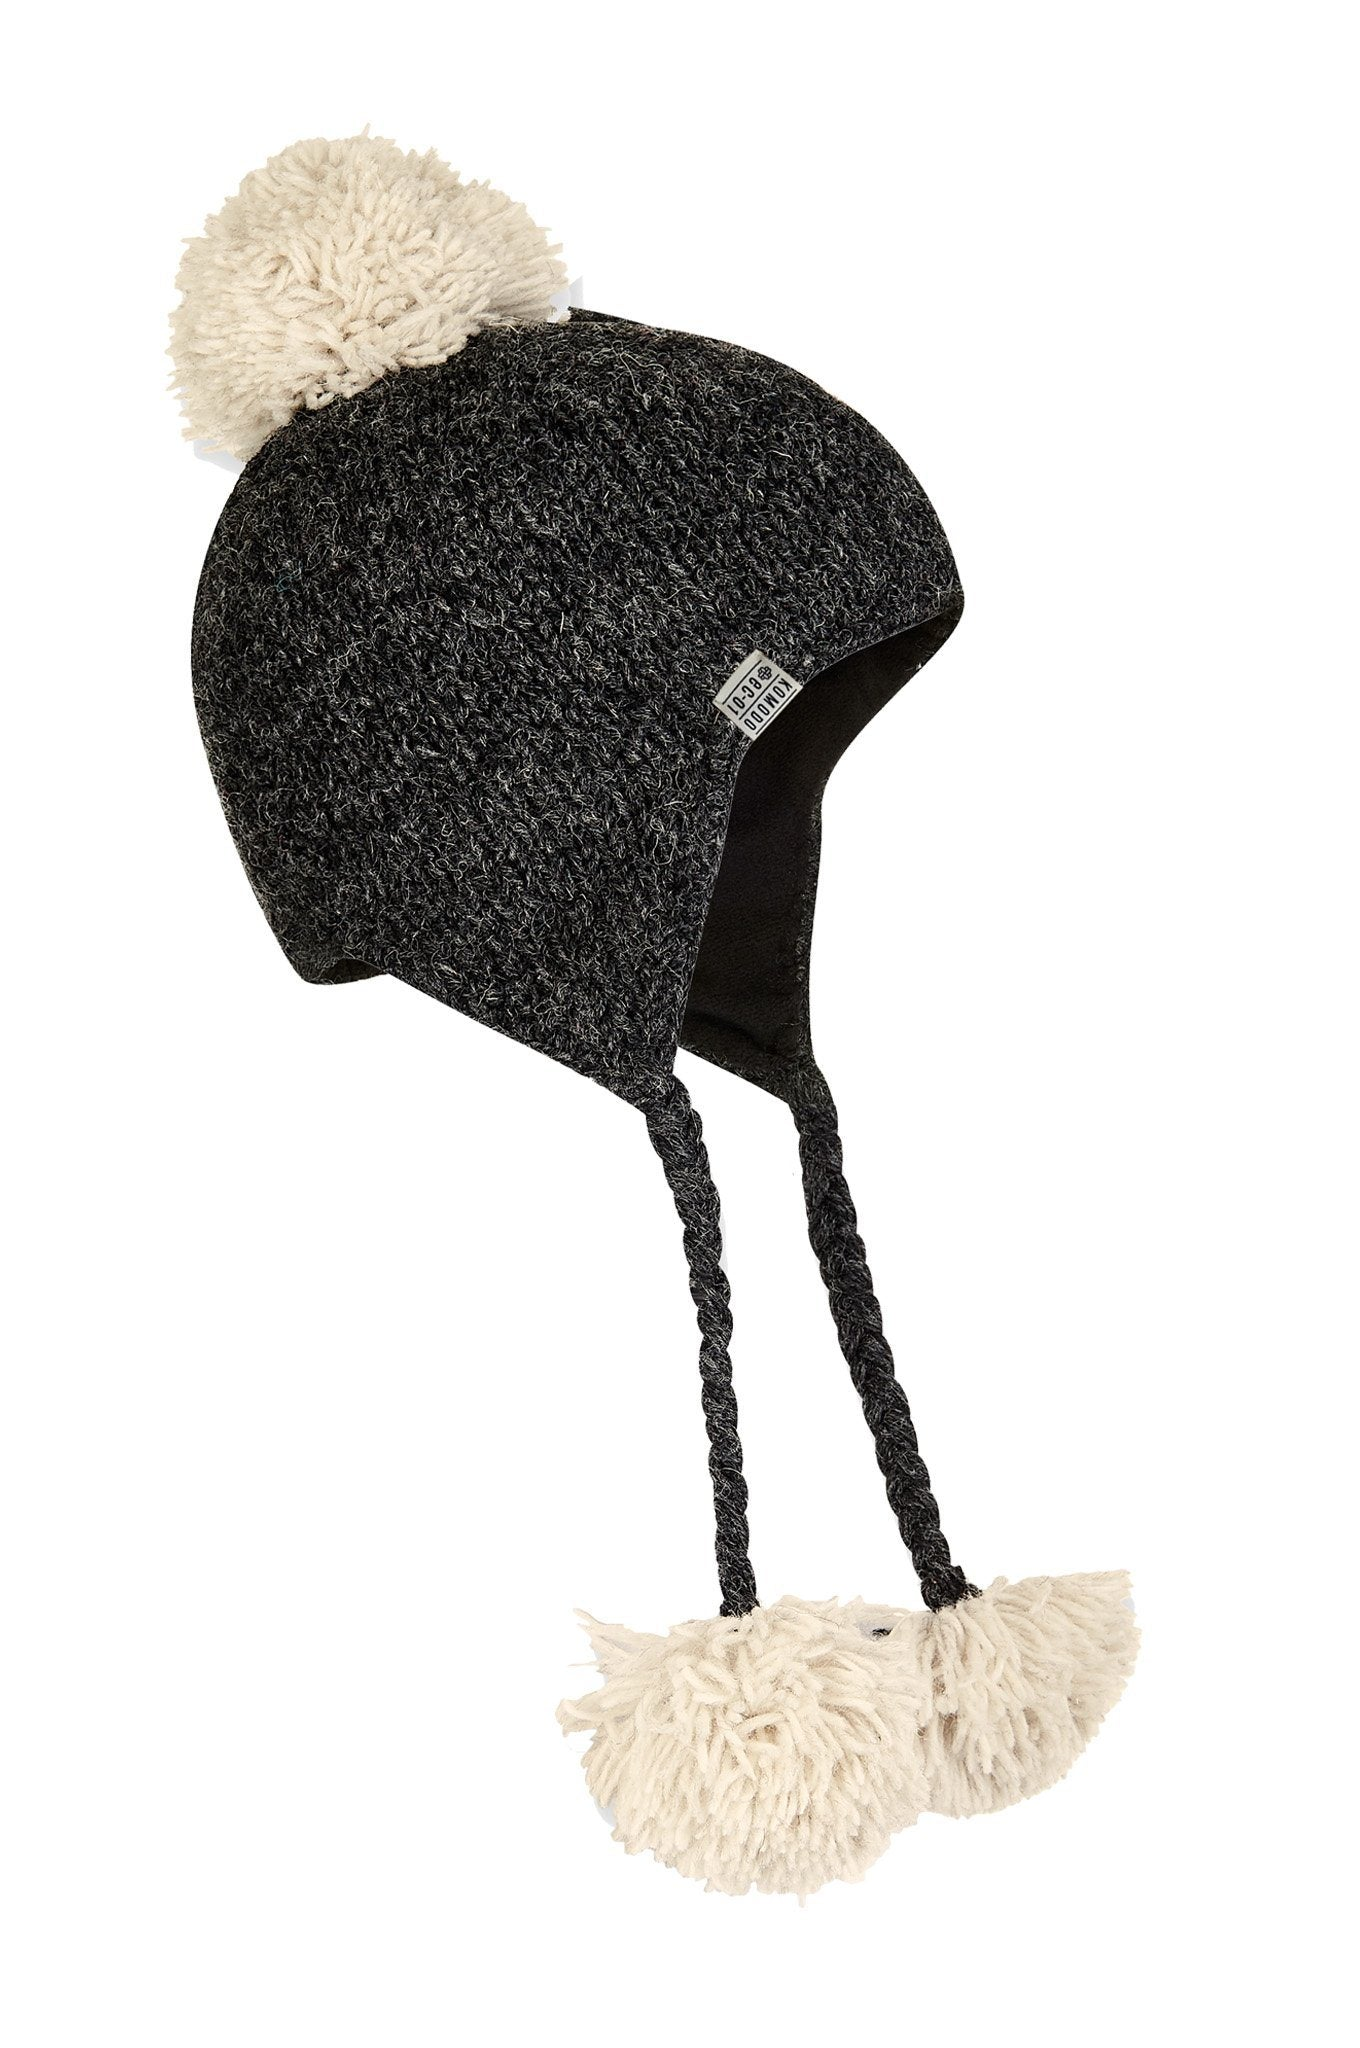 Accessories - ELO Recycled Wool Hat Coal